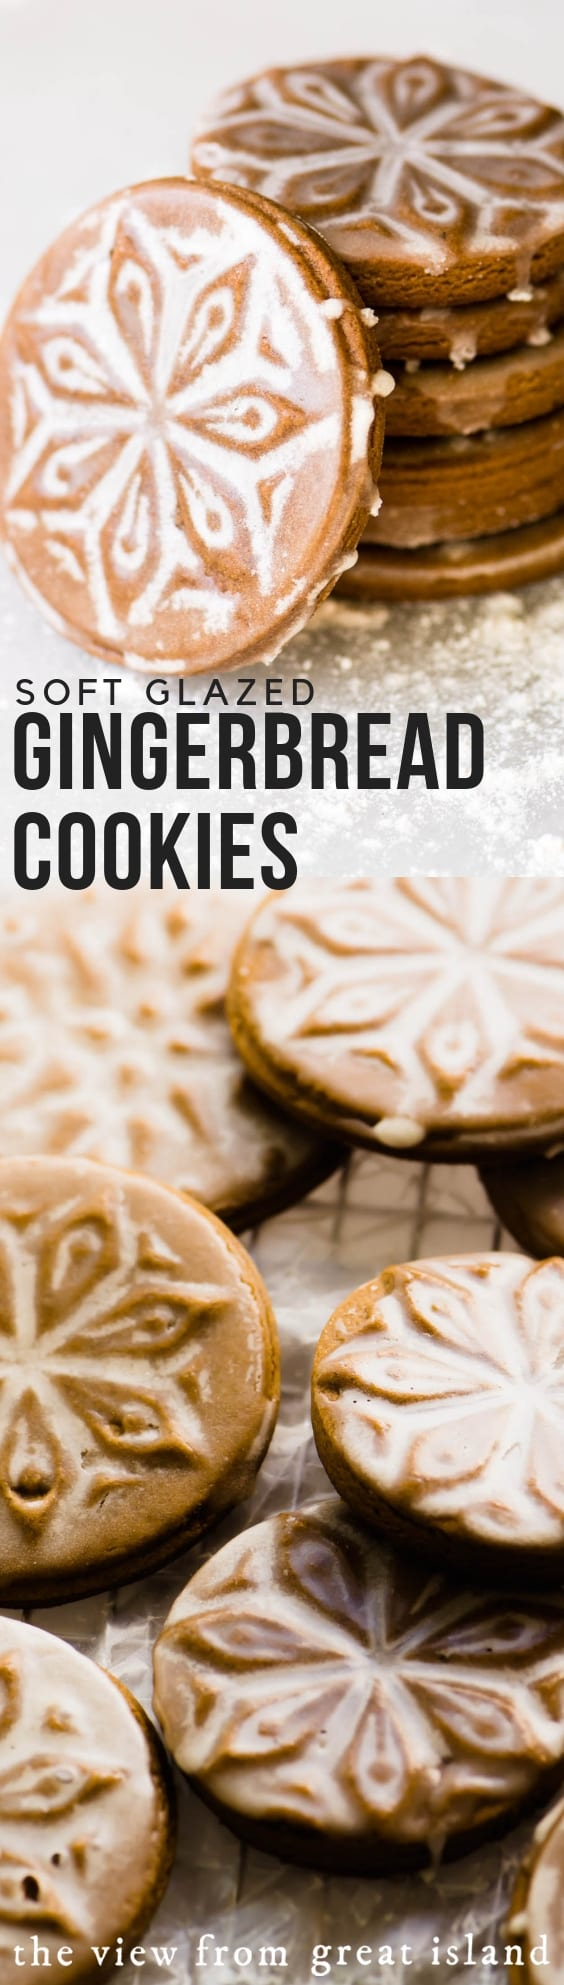 Soft Glazed Gingerbread Cookies made with cookie stamps. These easy roll out cookies will become your new holiday favorites. #cookies #ottolenghi #recipe #easy #cookiestamps #Christmascookie #gingerbread #spicecookies #gingerbread #holidaycookies #molasses #authentic #german #LEBKUCHEN